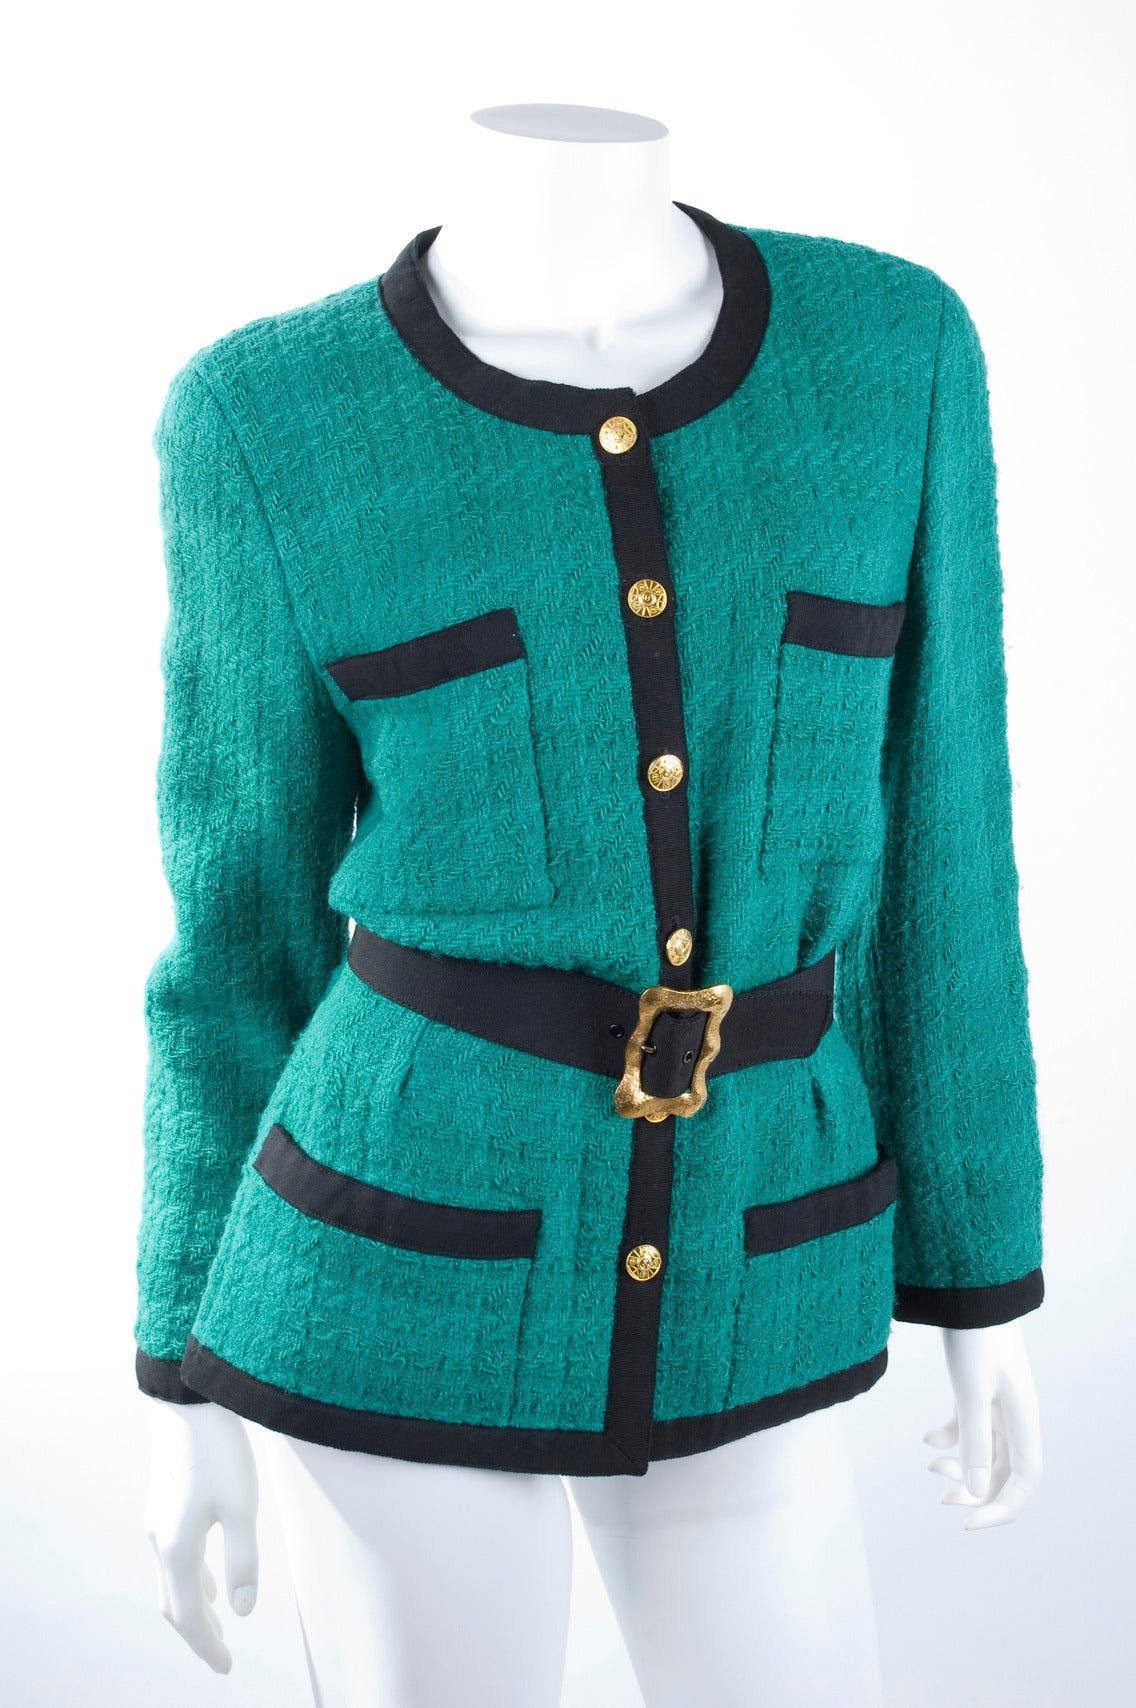 Chanel Jacket with Belt In Excellent Condition For Sale In Hamburg, DE